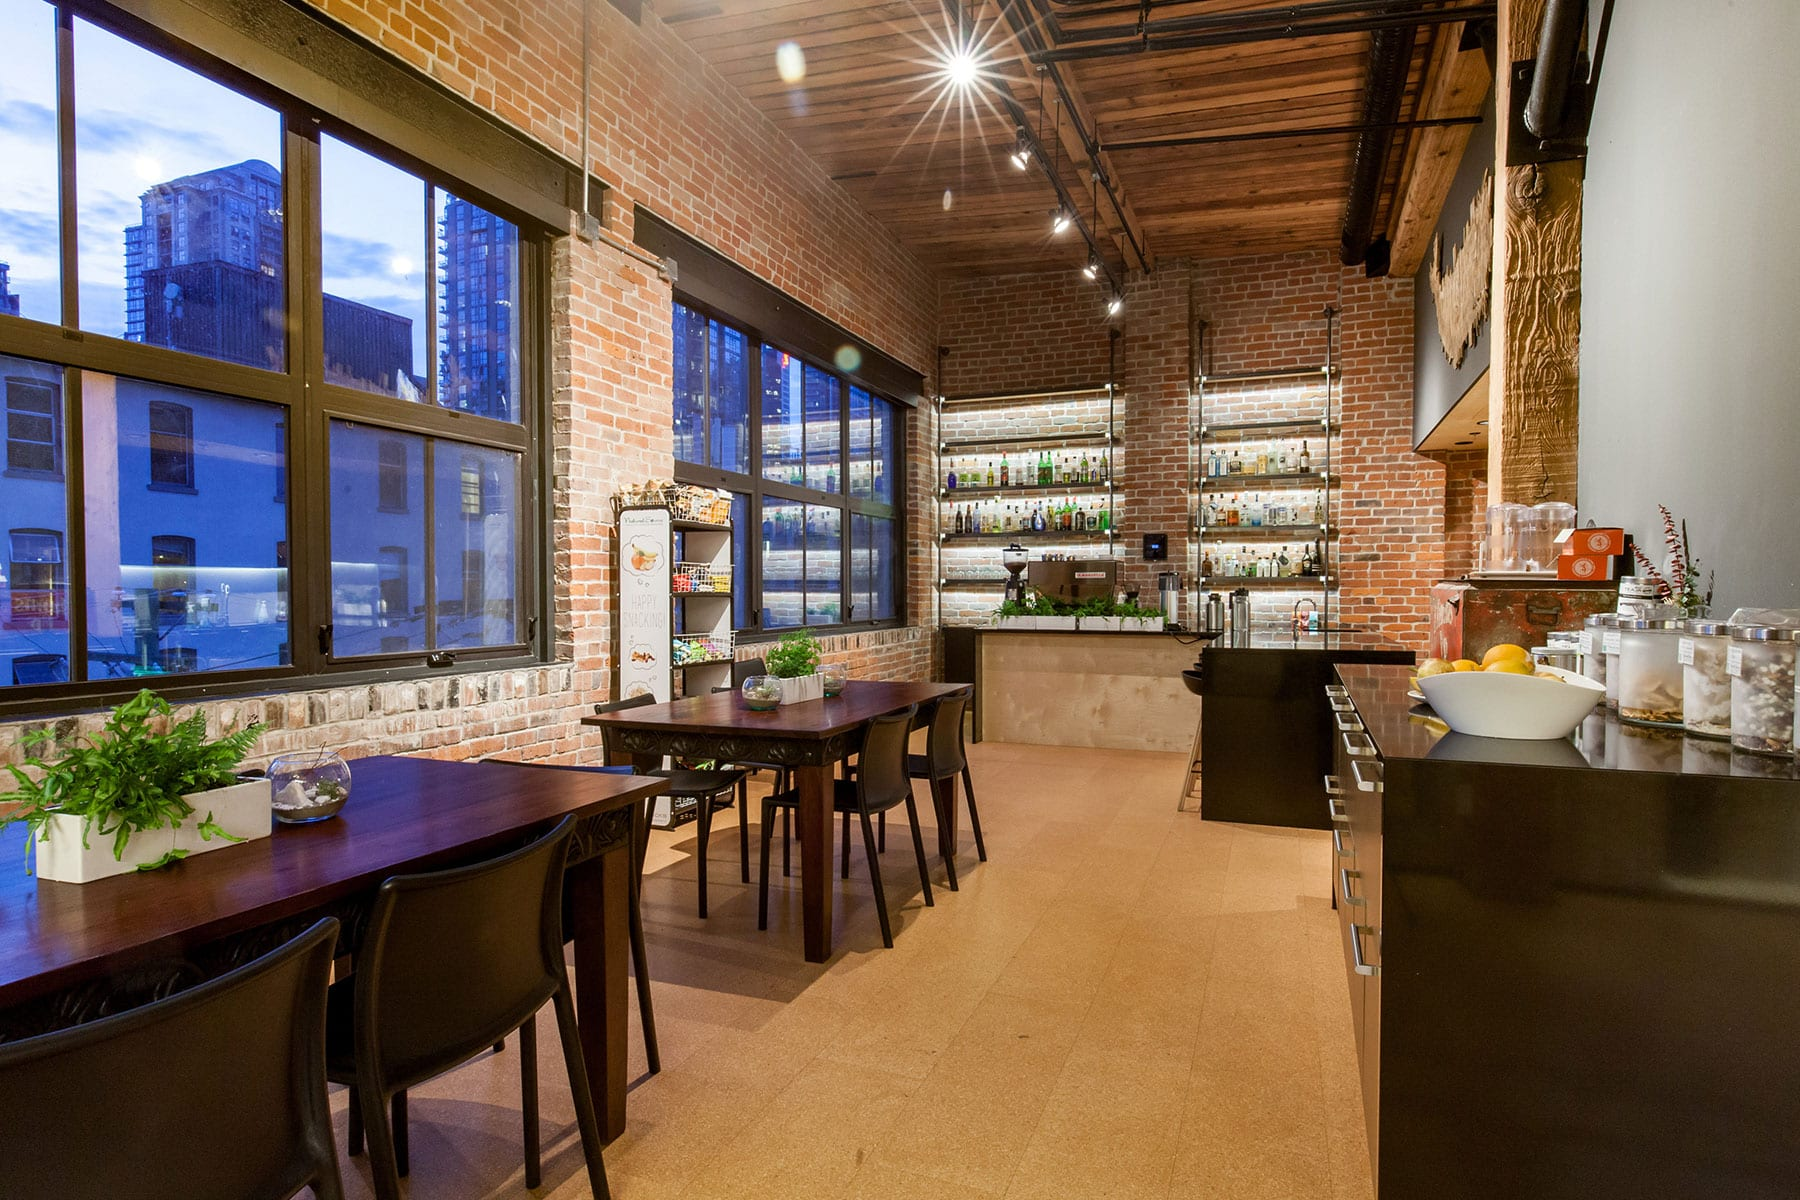 Social space and kitchen staff room with exposed brick in an industrial atmosphere of a tech company headquartered in Yaletown